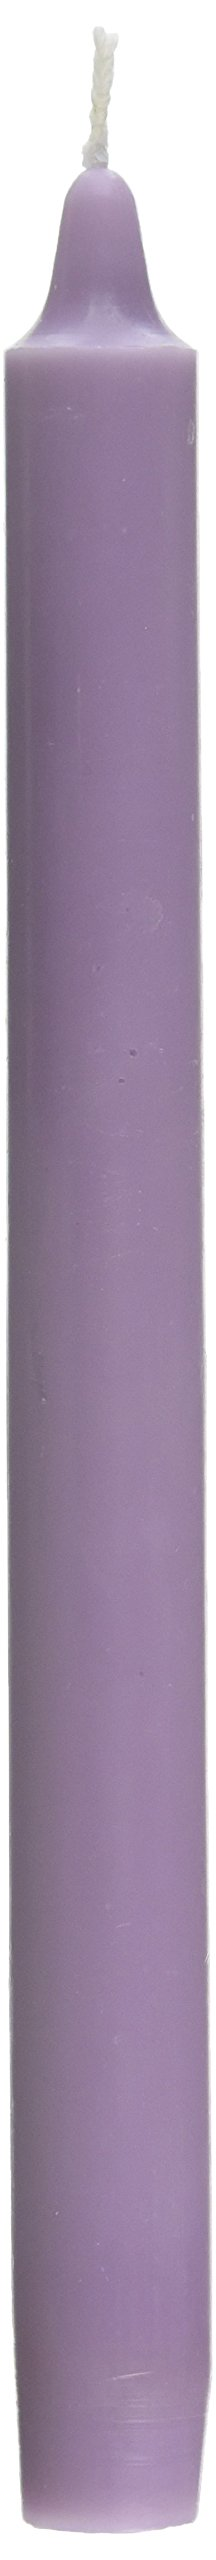 Zest Candle 12-Piece Taper Candles, 10-Inch, Lavender Straight by Zest Candle